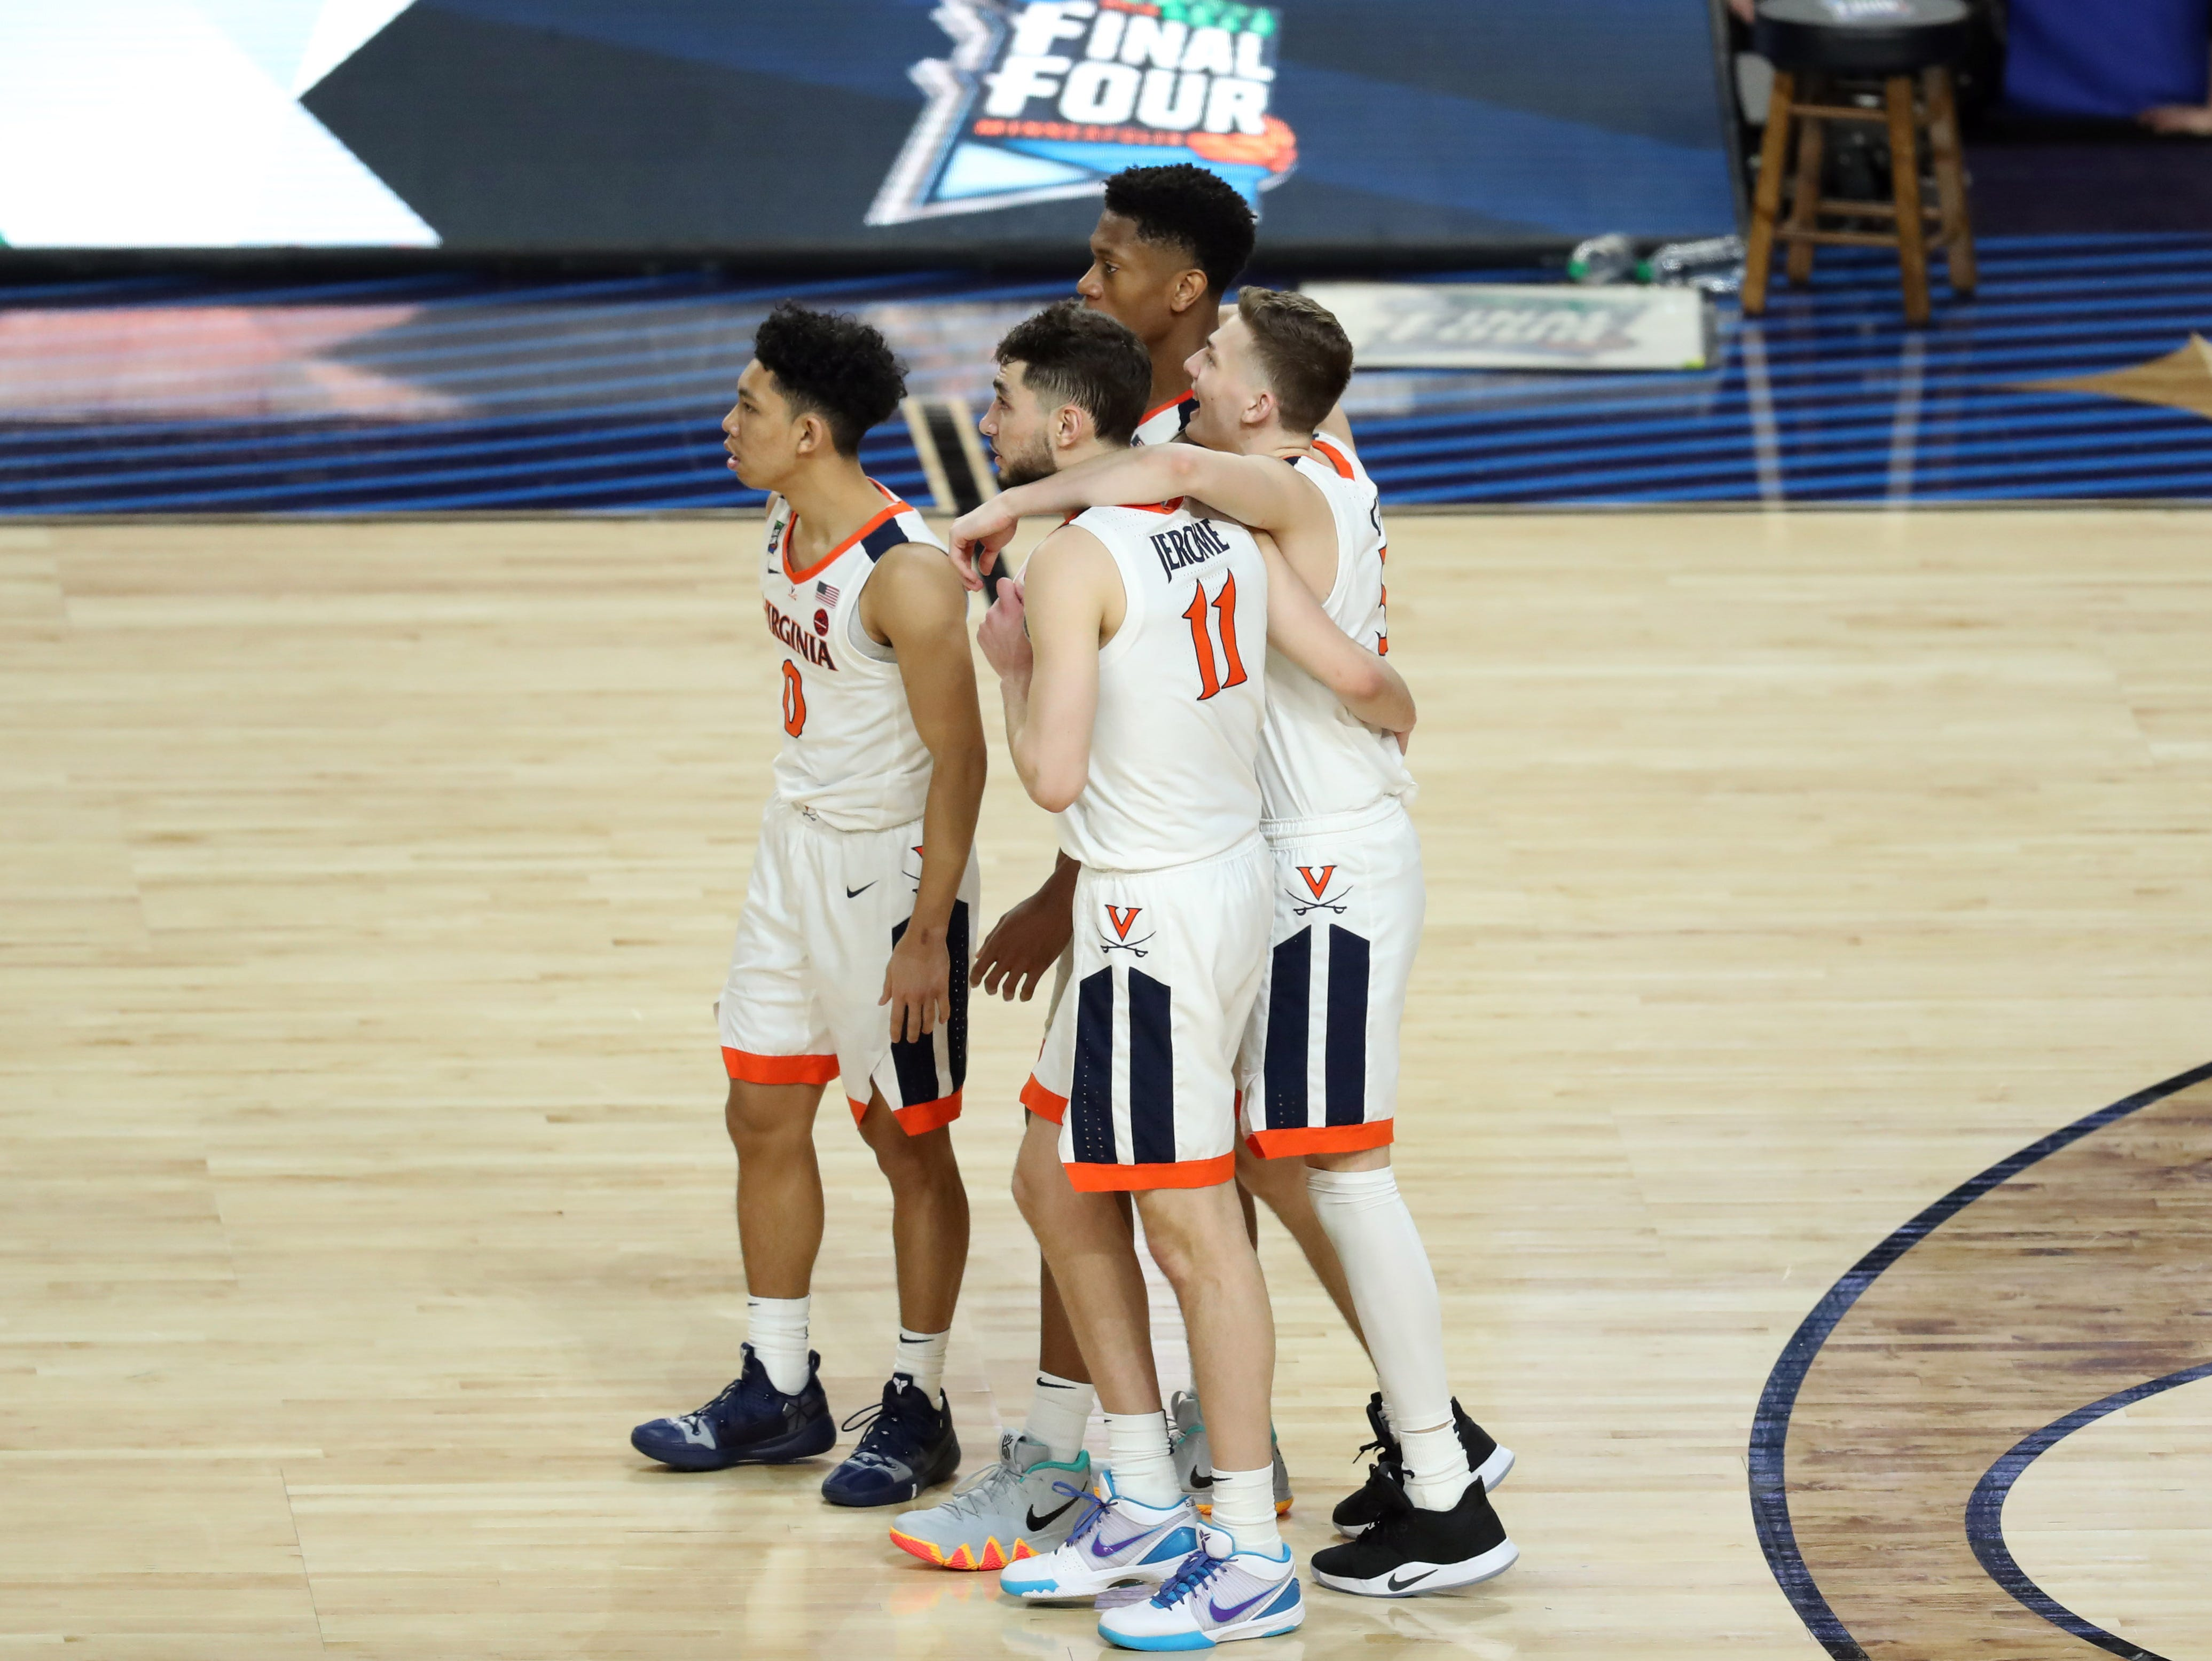 Apr 8, 2019; Minneapolis, MN, USA; Virginia Cavaliers guard Ty Jerome (11) and guard Kyle Guy (5) and teammates embrace during the second half against the Texas Tech Red Raiders in the championship game of the 2019 men's Final Four at US Bank Stadium. Mandatory Credit: Brace Hemmelgarn-USA TODAY Sports